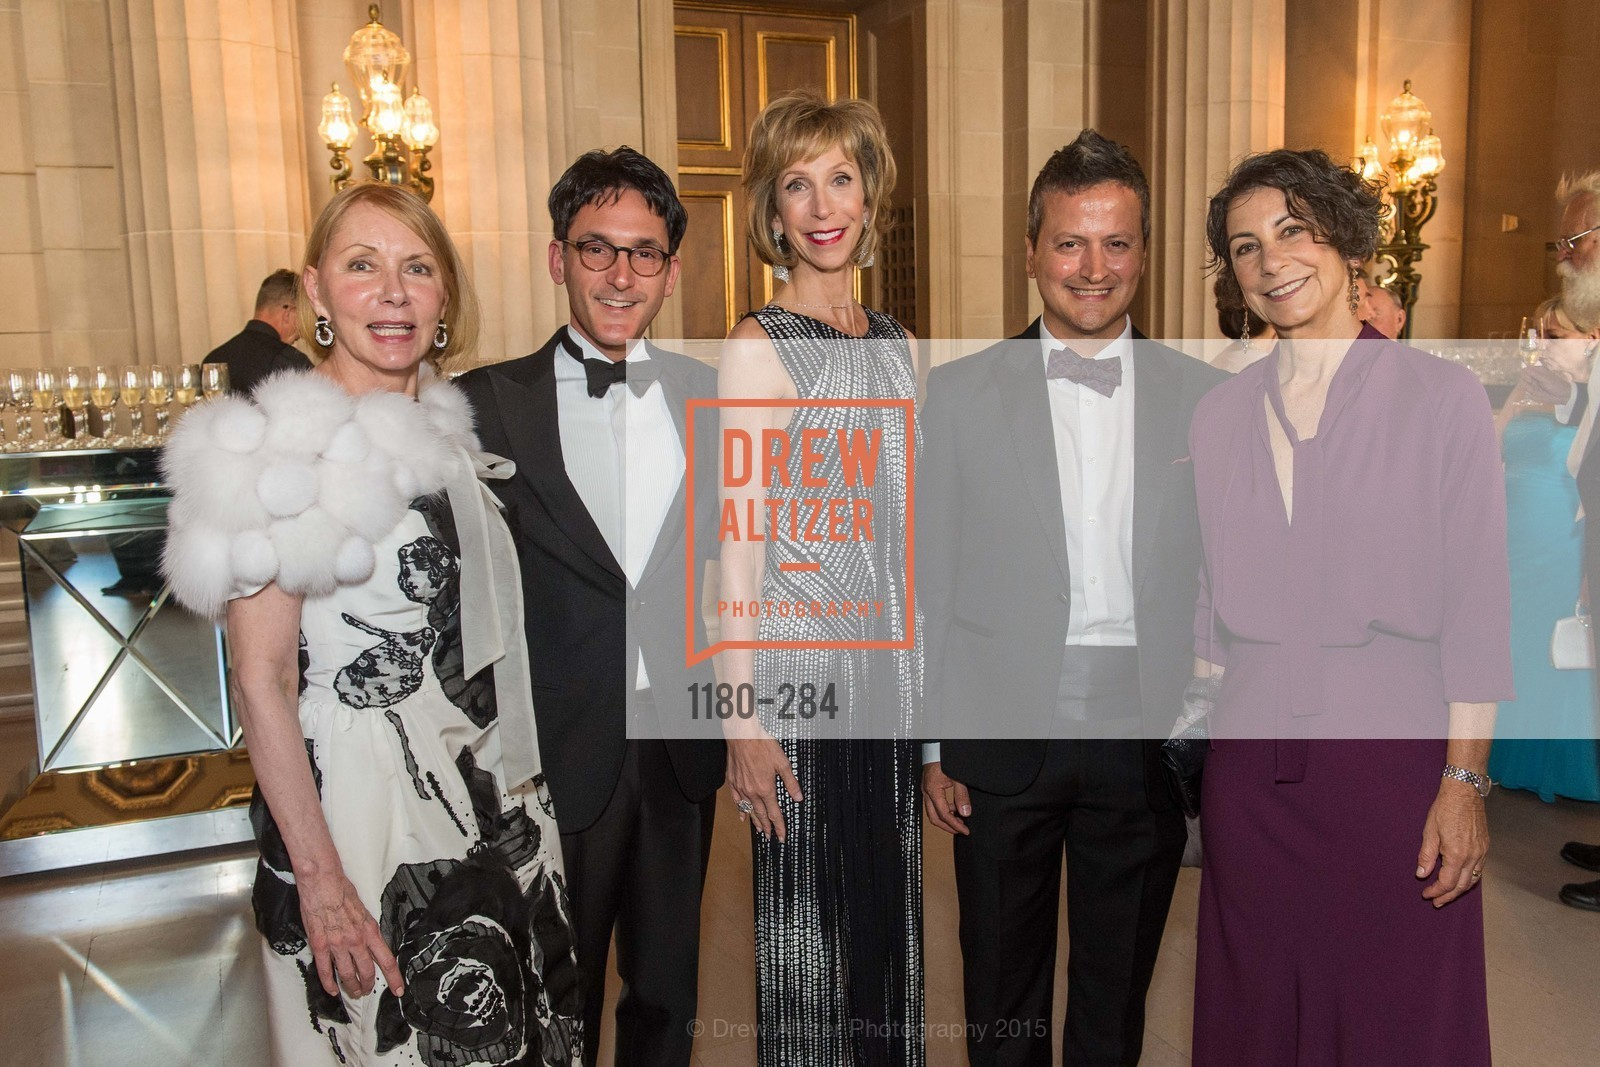 Arlene Sullivan, James Krohn, Nancy Kukacka, Edward Teran, Micky Turner, Opera Ball 2015: Moonlight & Music, War Memorial Opera House. 301 Van Ness Ave, September 11th, 2015,Drew Altizer, Drew Altizer Photography, full-service agency, private events, San Francisco photographer, photographer california